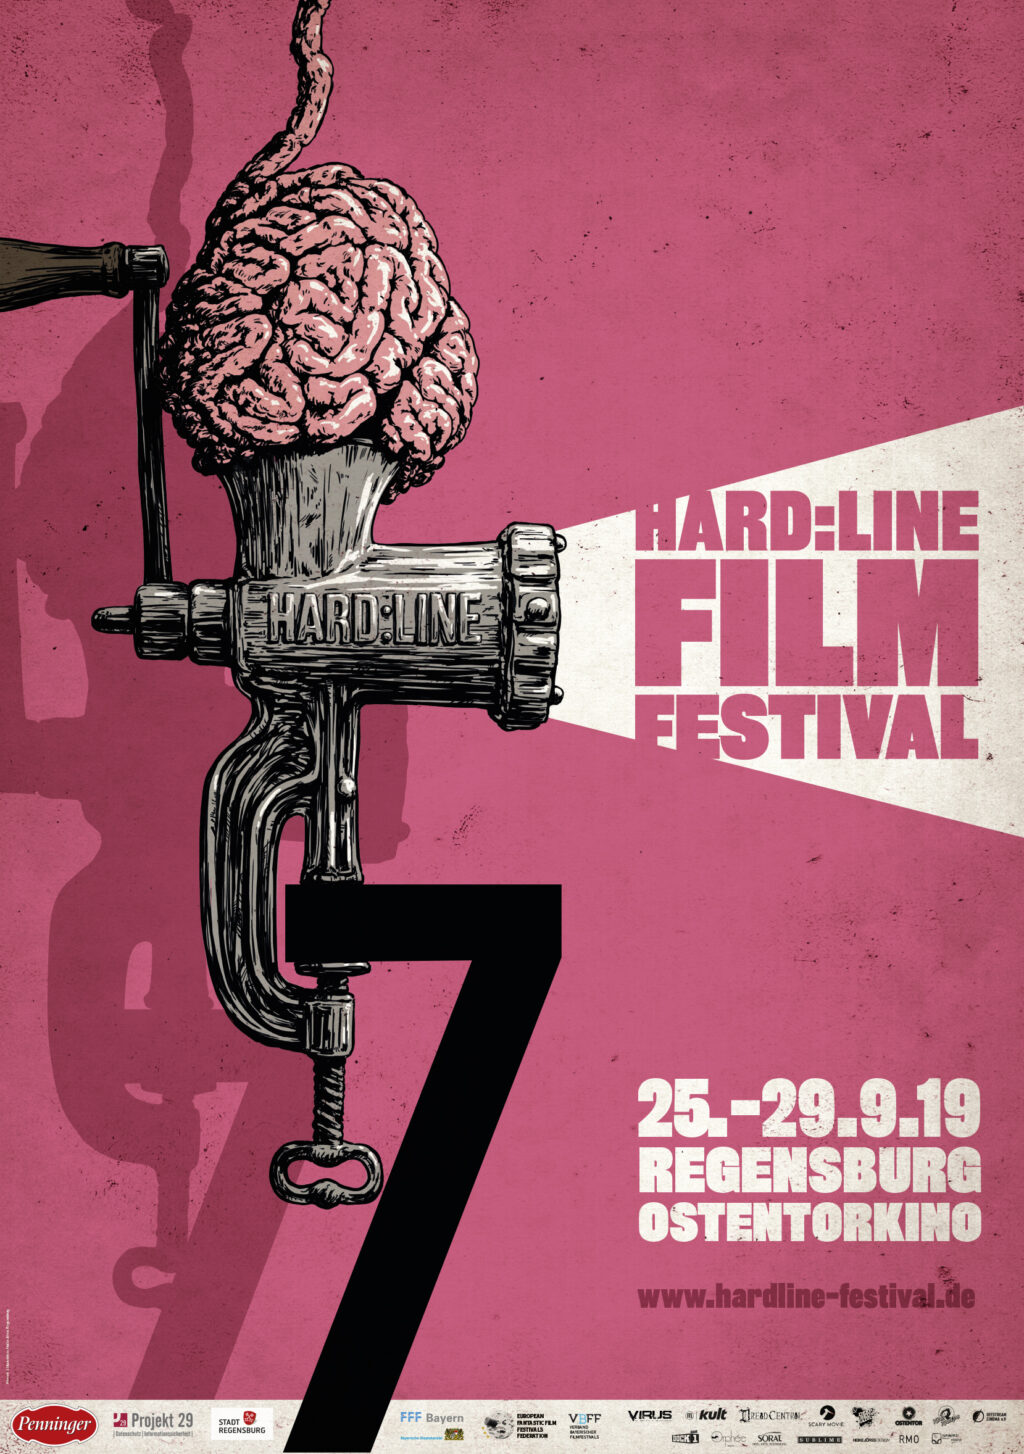 hardline2019poster 1024x1454 - Exclusivo do HARD: LINE 2019: Trailer do Fest de Sangue, Violência e Terror Powers!